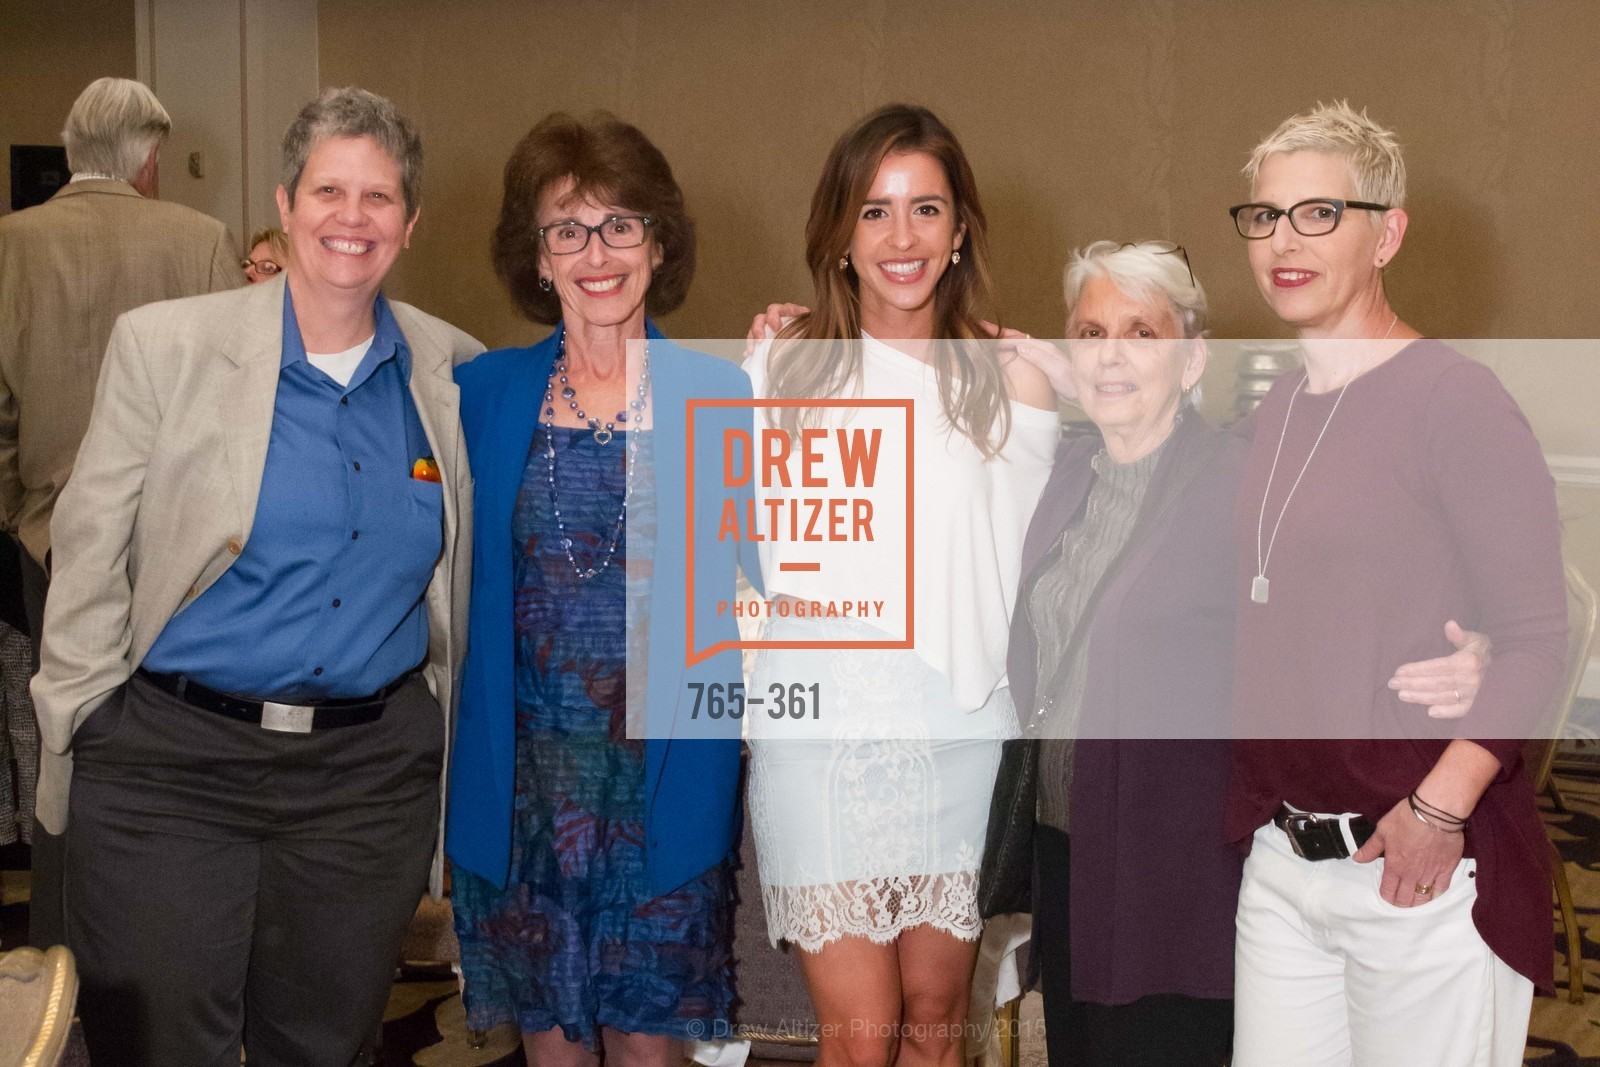 Sally Fasen, Darlene Feltstein, Emily Feltstein, Carol Pollock, Sarah Pollock, Homeless Prenatal Programs Annual Luncheon, Fairmont Hotel, October 9th, 2015,Drew Altizer, Drew Altizer Photography, full-service agency, private events, San Francisco photographer, photographer california